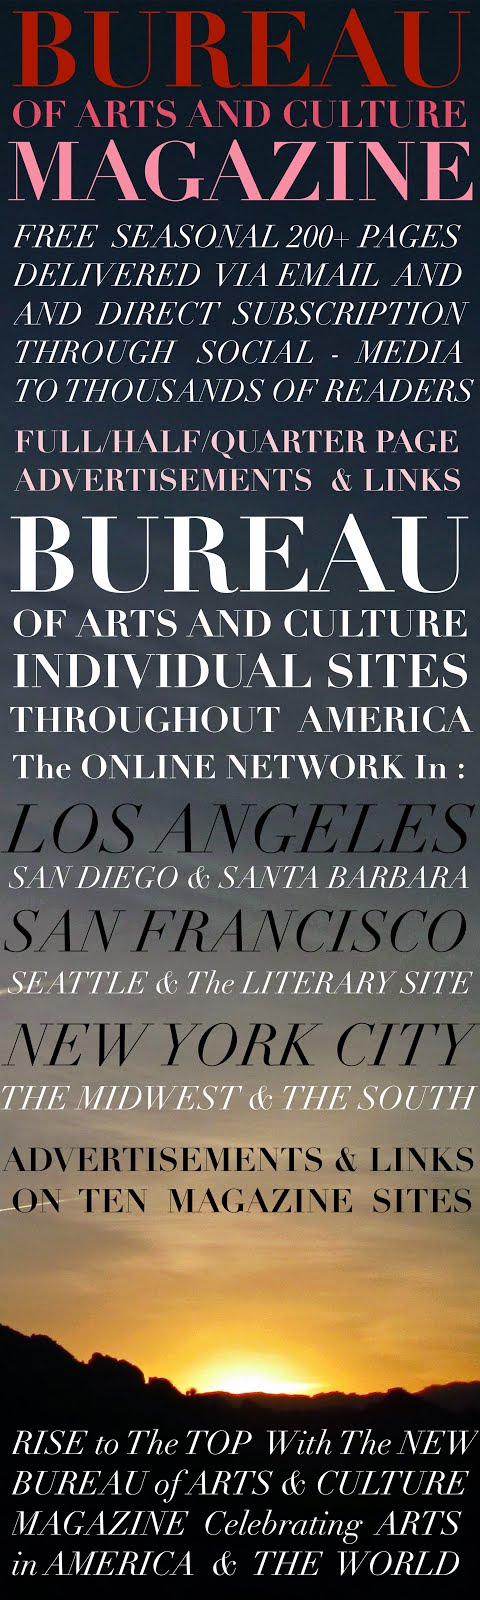 WELCOME TO BUREAU OF ARTS AND CULTURE SAN FRANCISCO USA